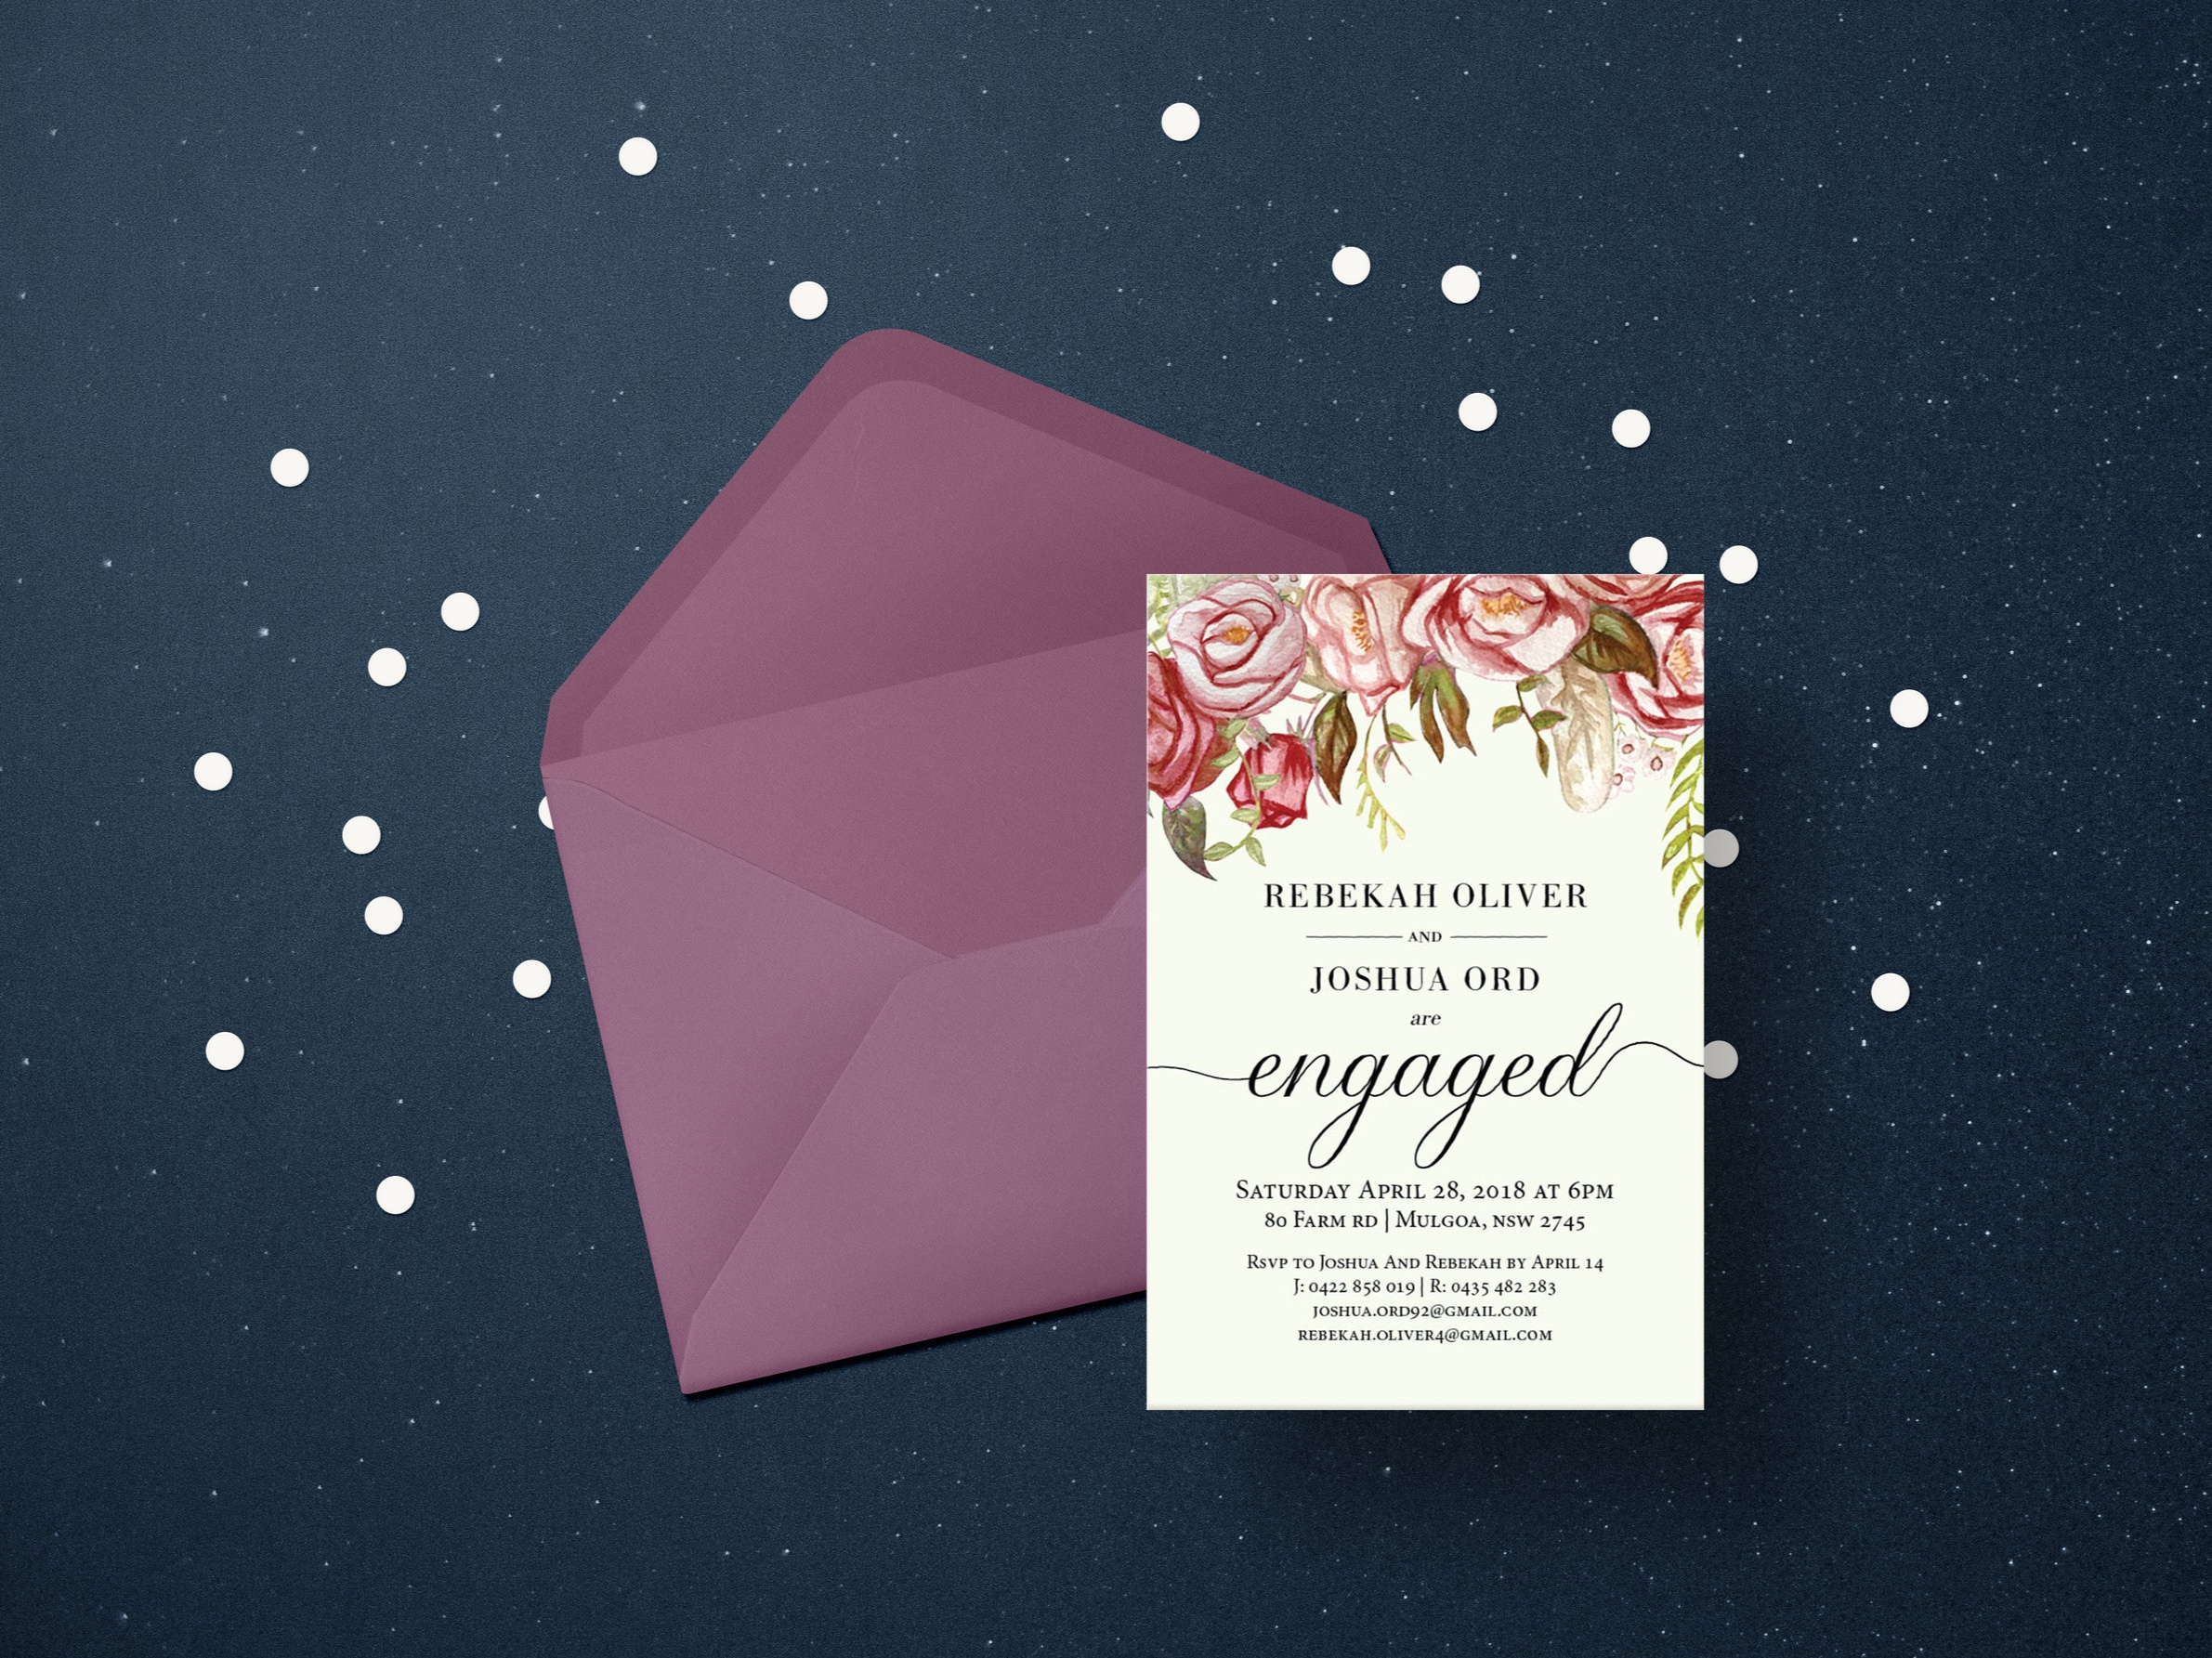 Stationary for Weddings and Events